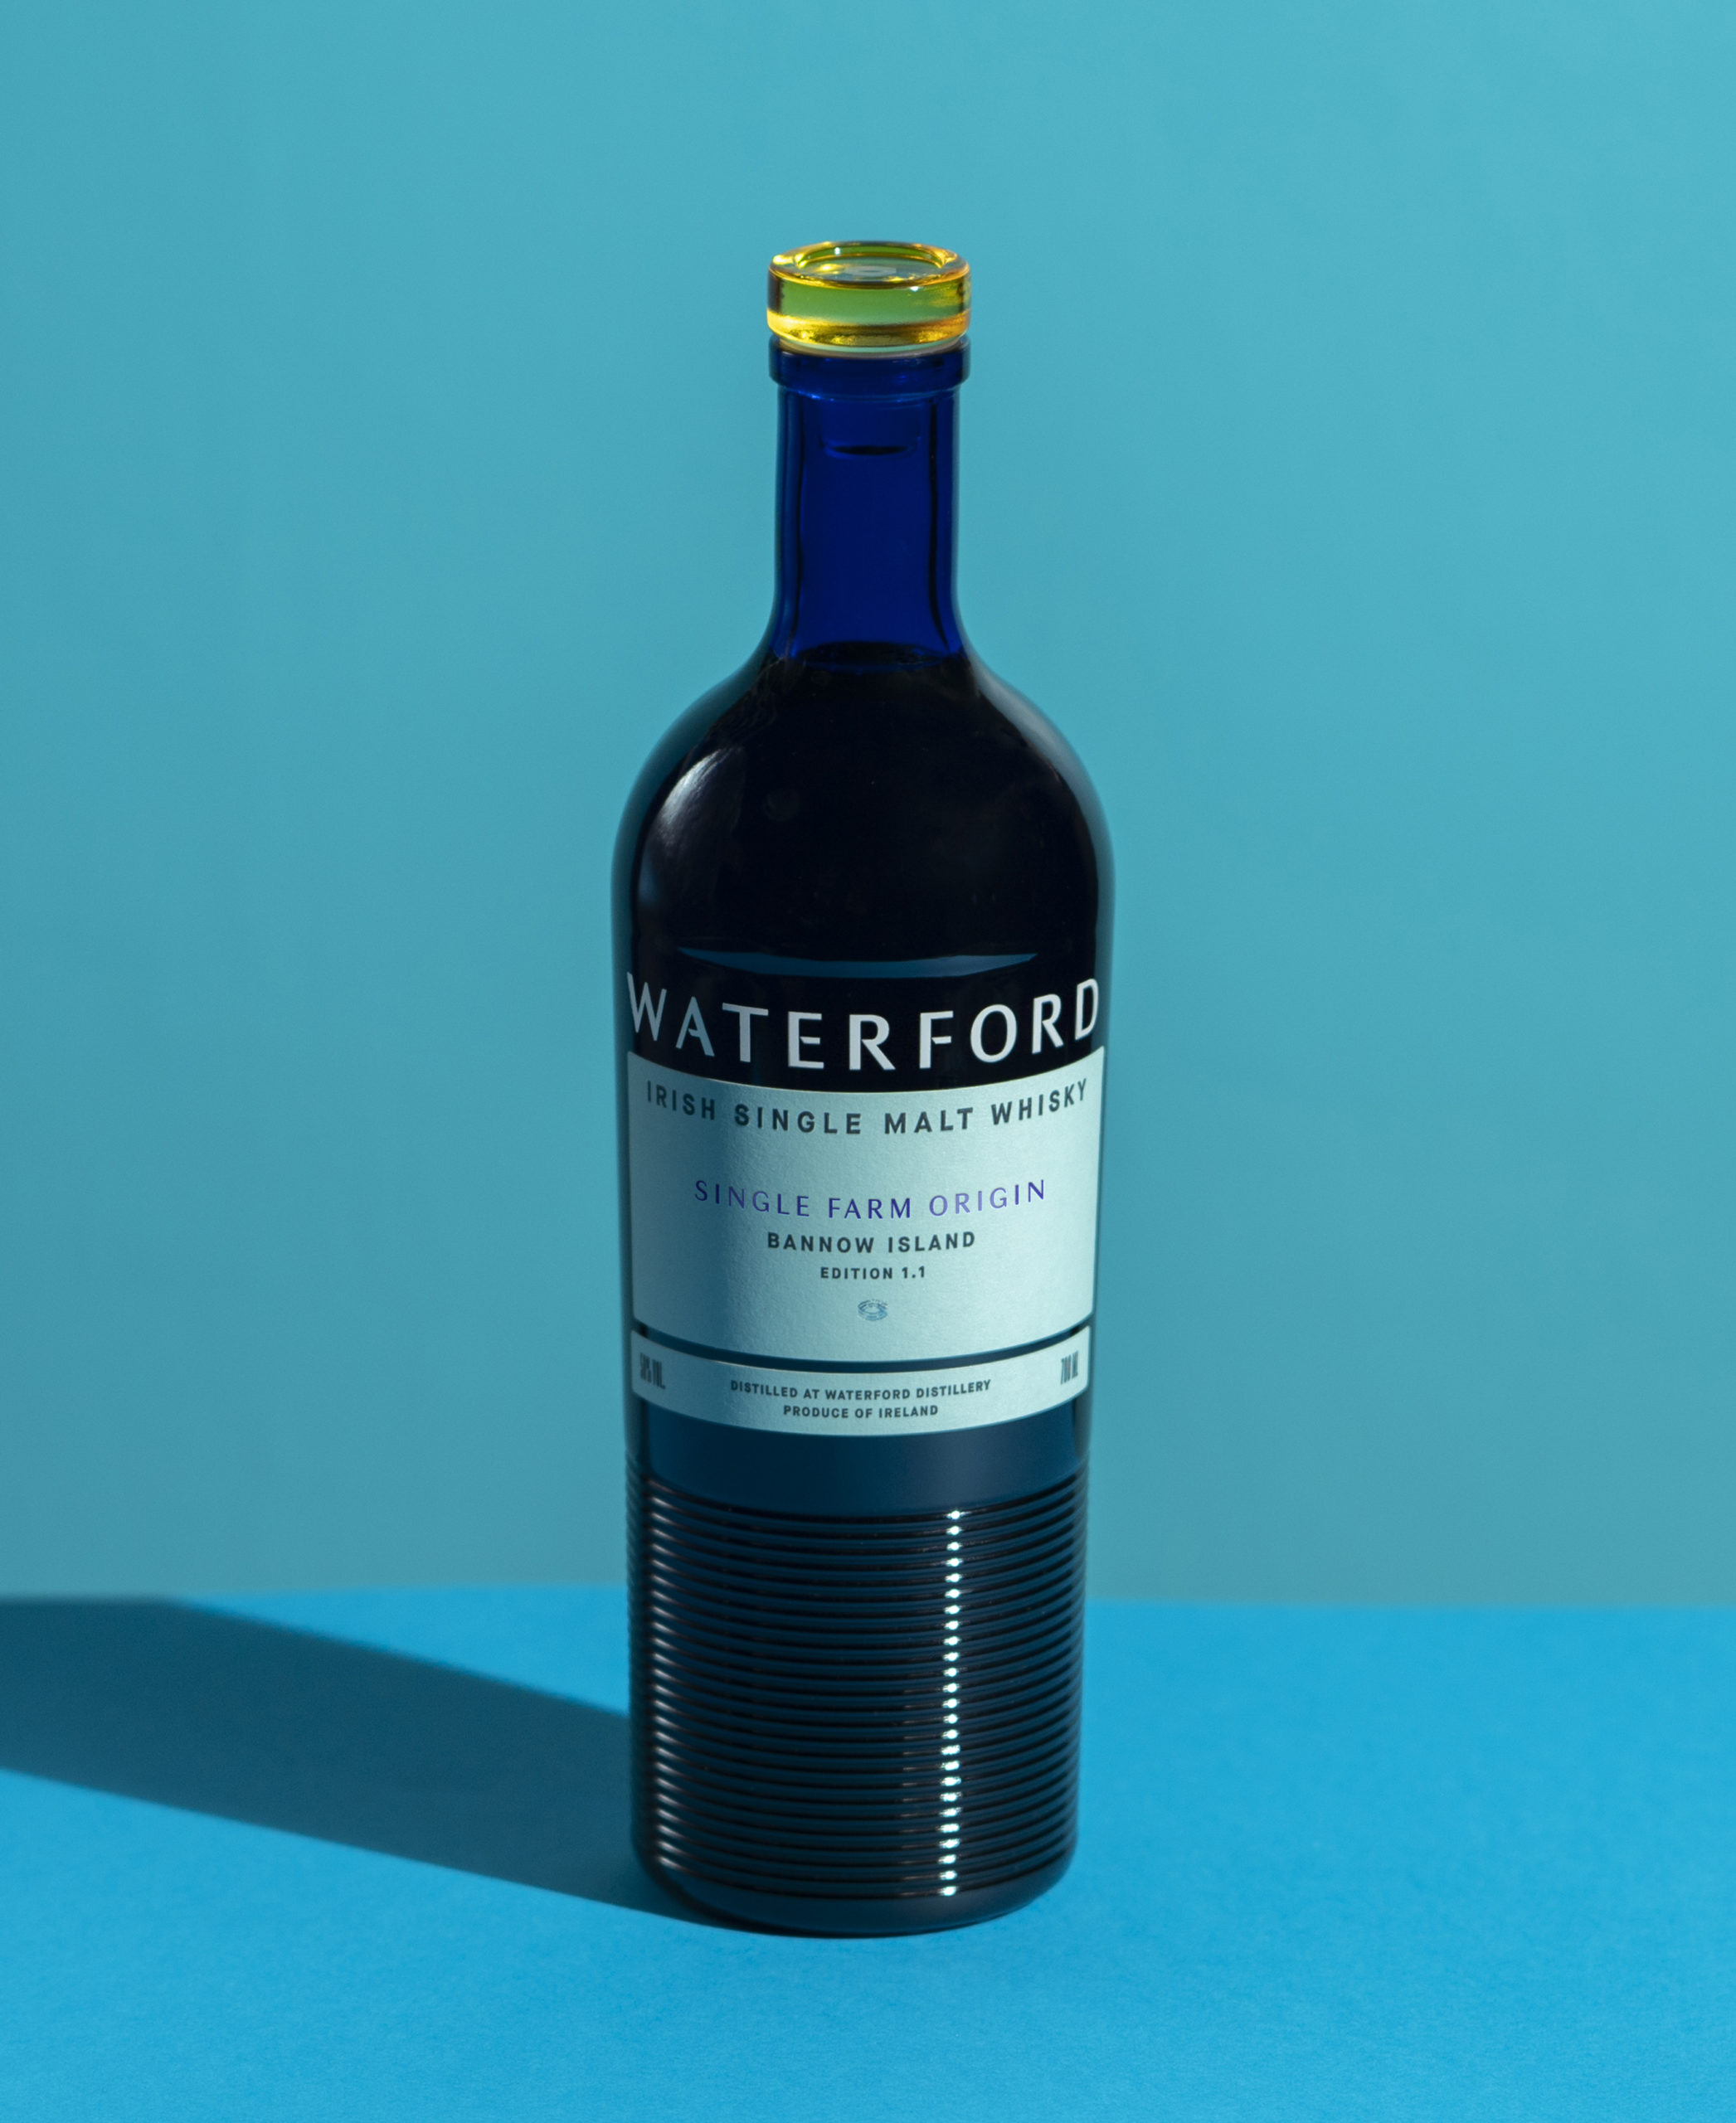 Waterford-Whisky-Product-Shoot1-March-2020_Bannow-Island-scaled